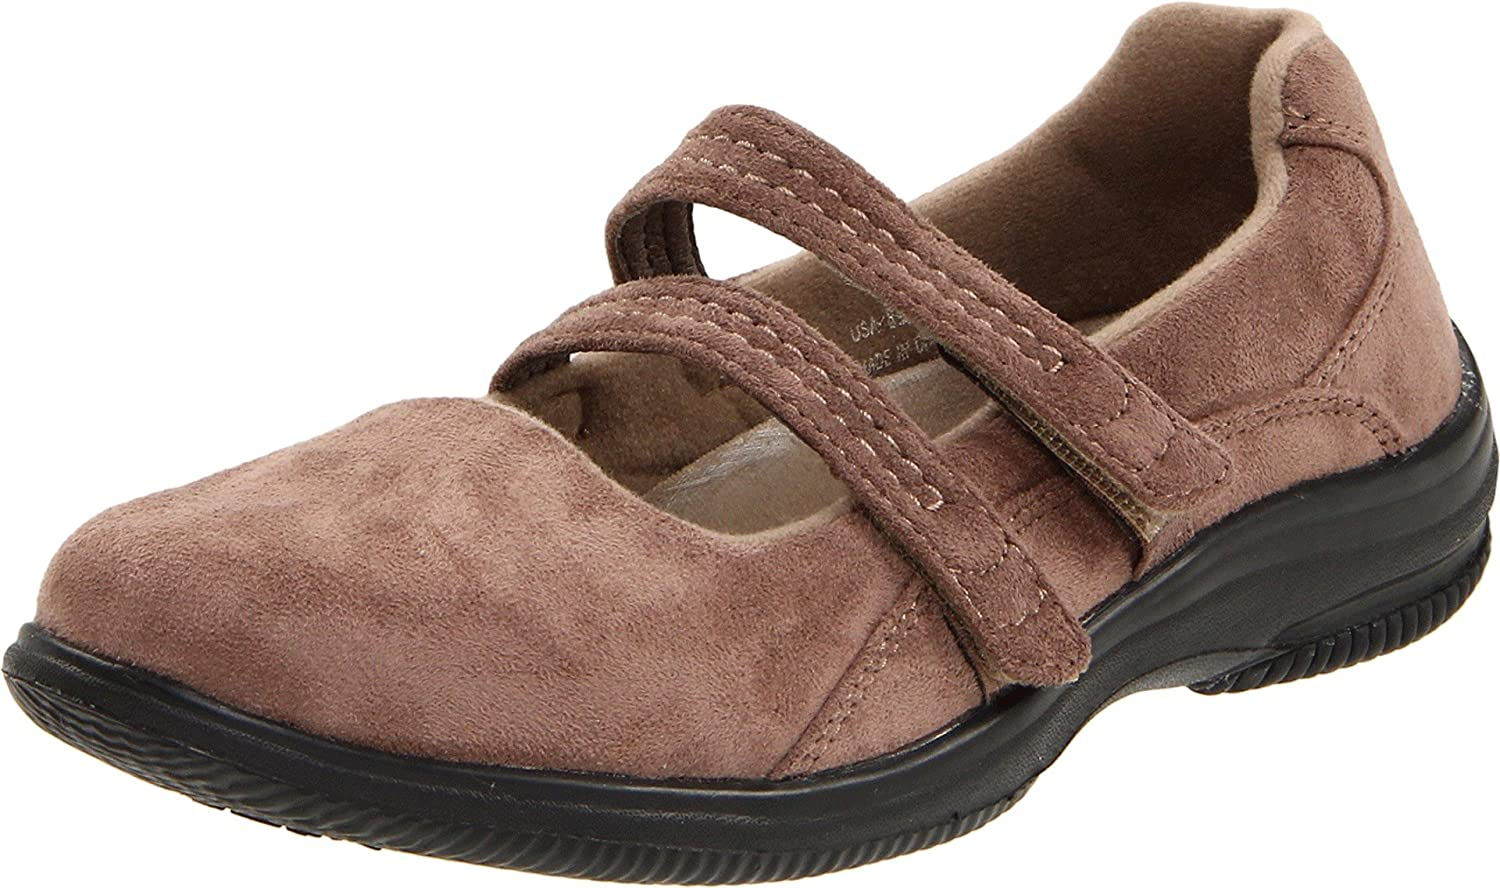 Propet Balance Women's Bilite Walker Mary Jane B00595C5HC 5.5 M (B) US|Taupe Velour